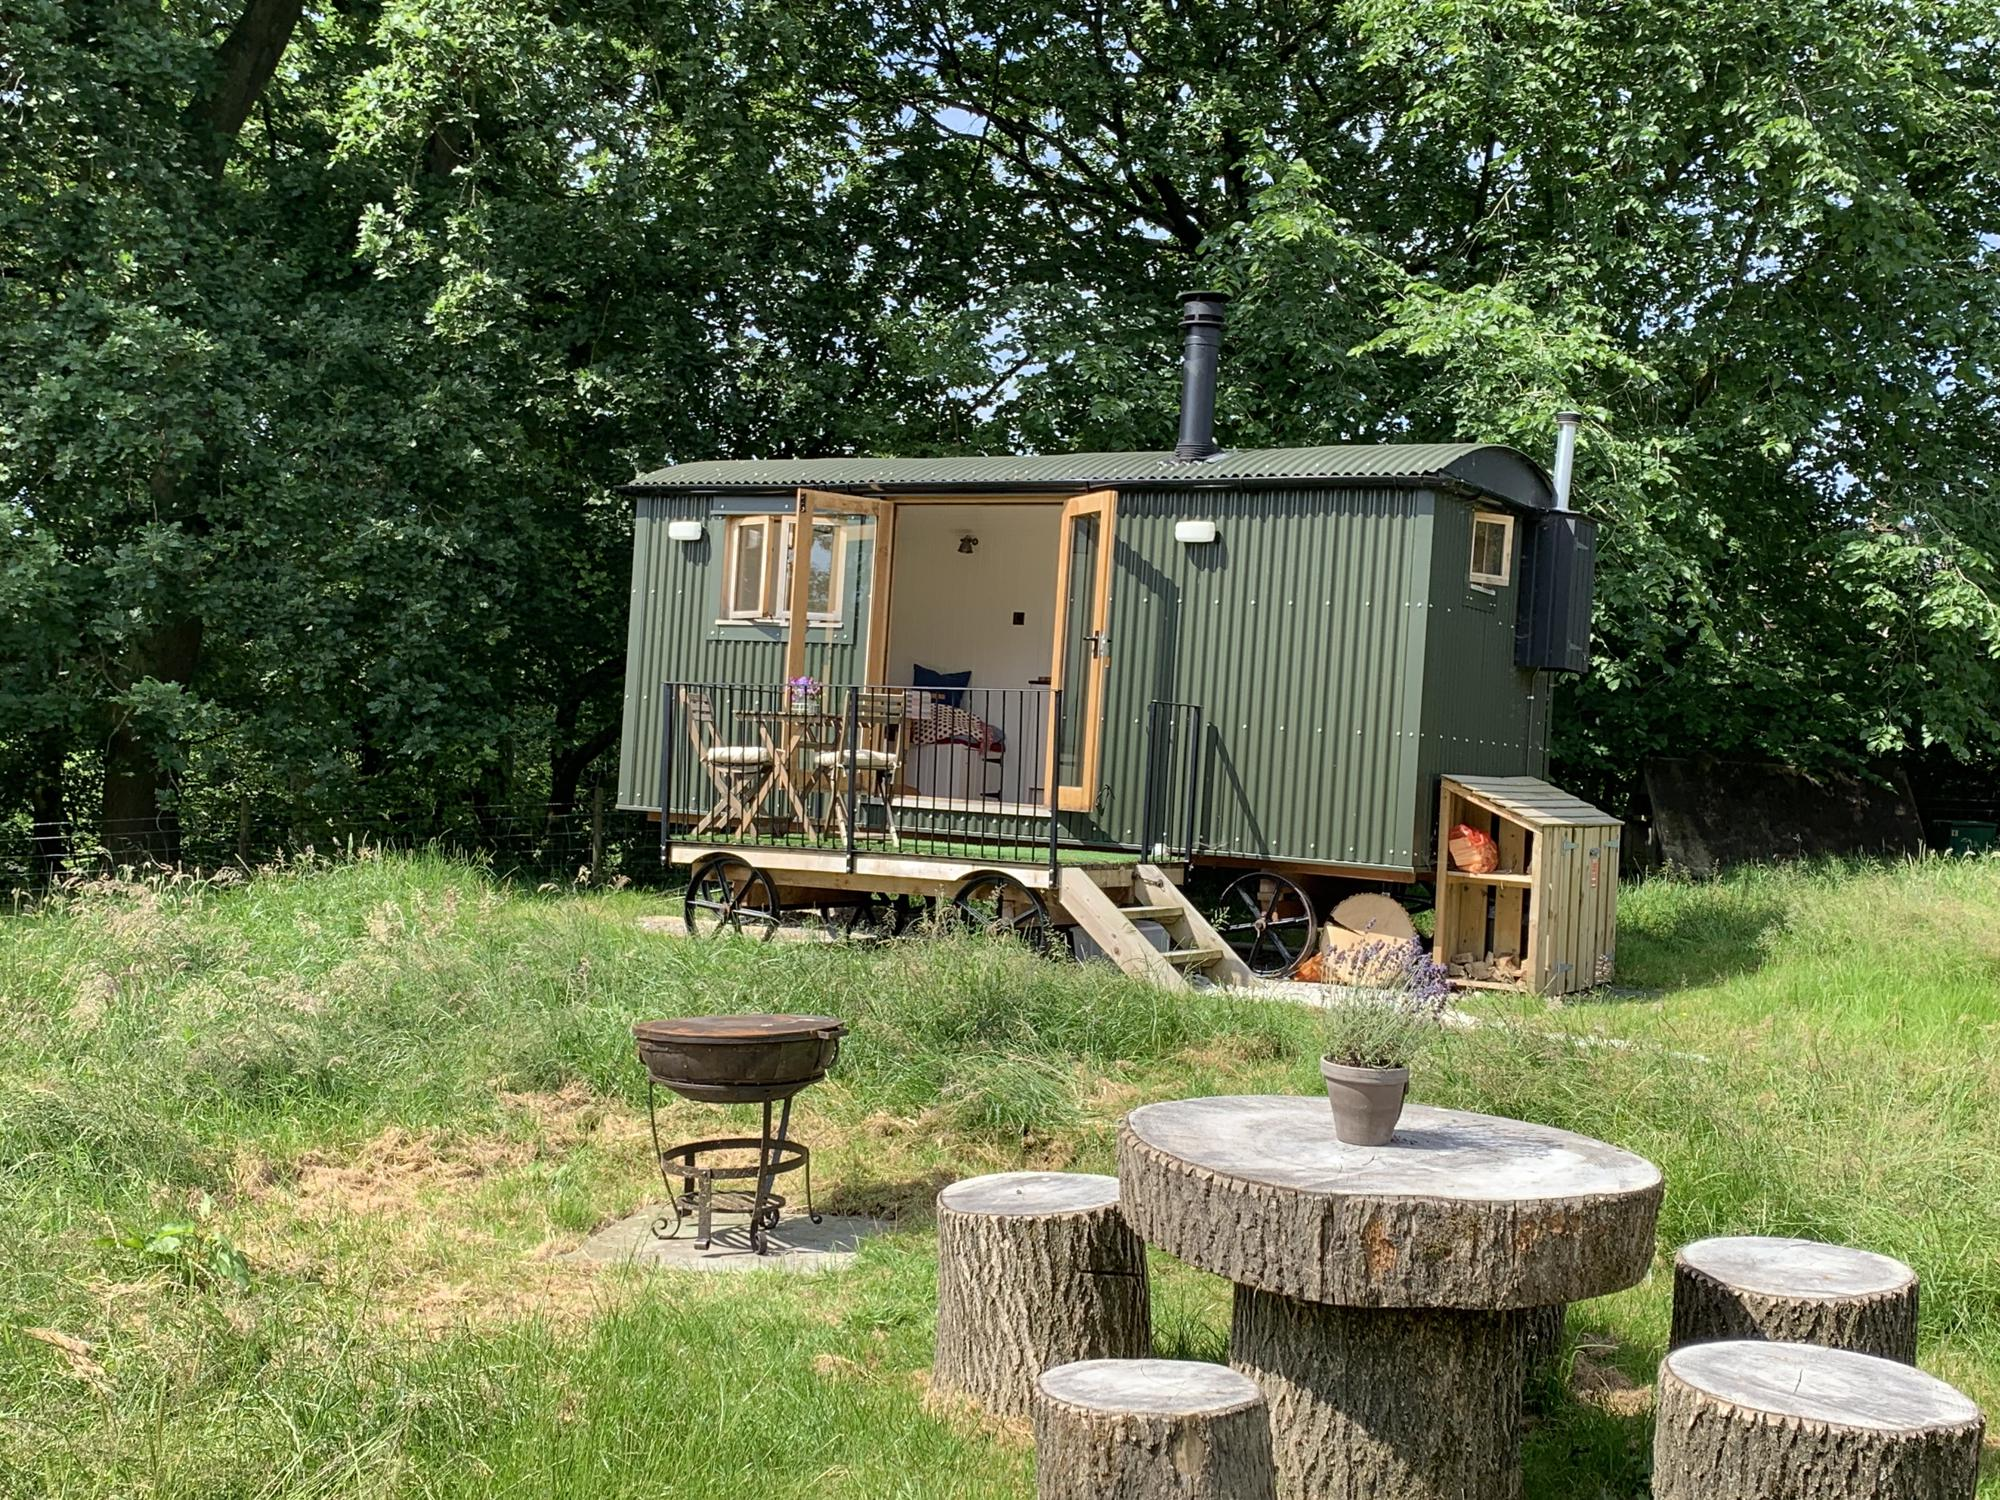 Campsites in Peak District National Park – Cool Camping